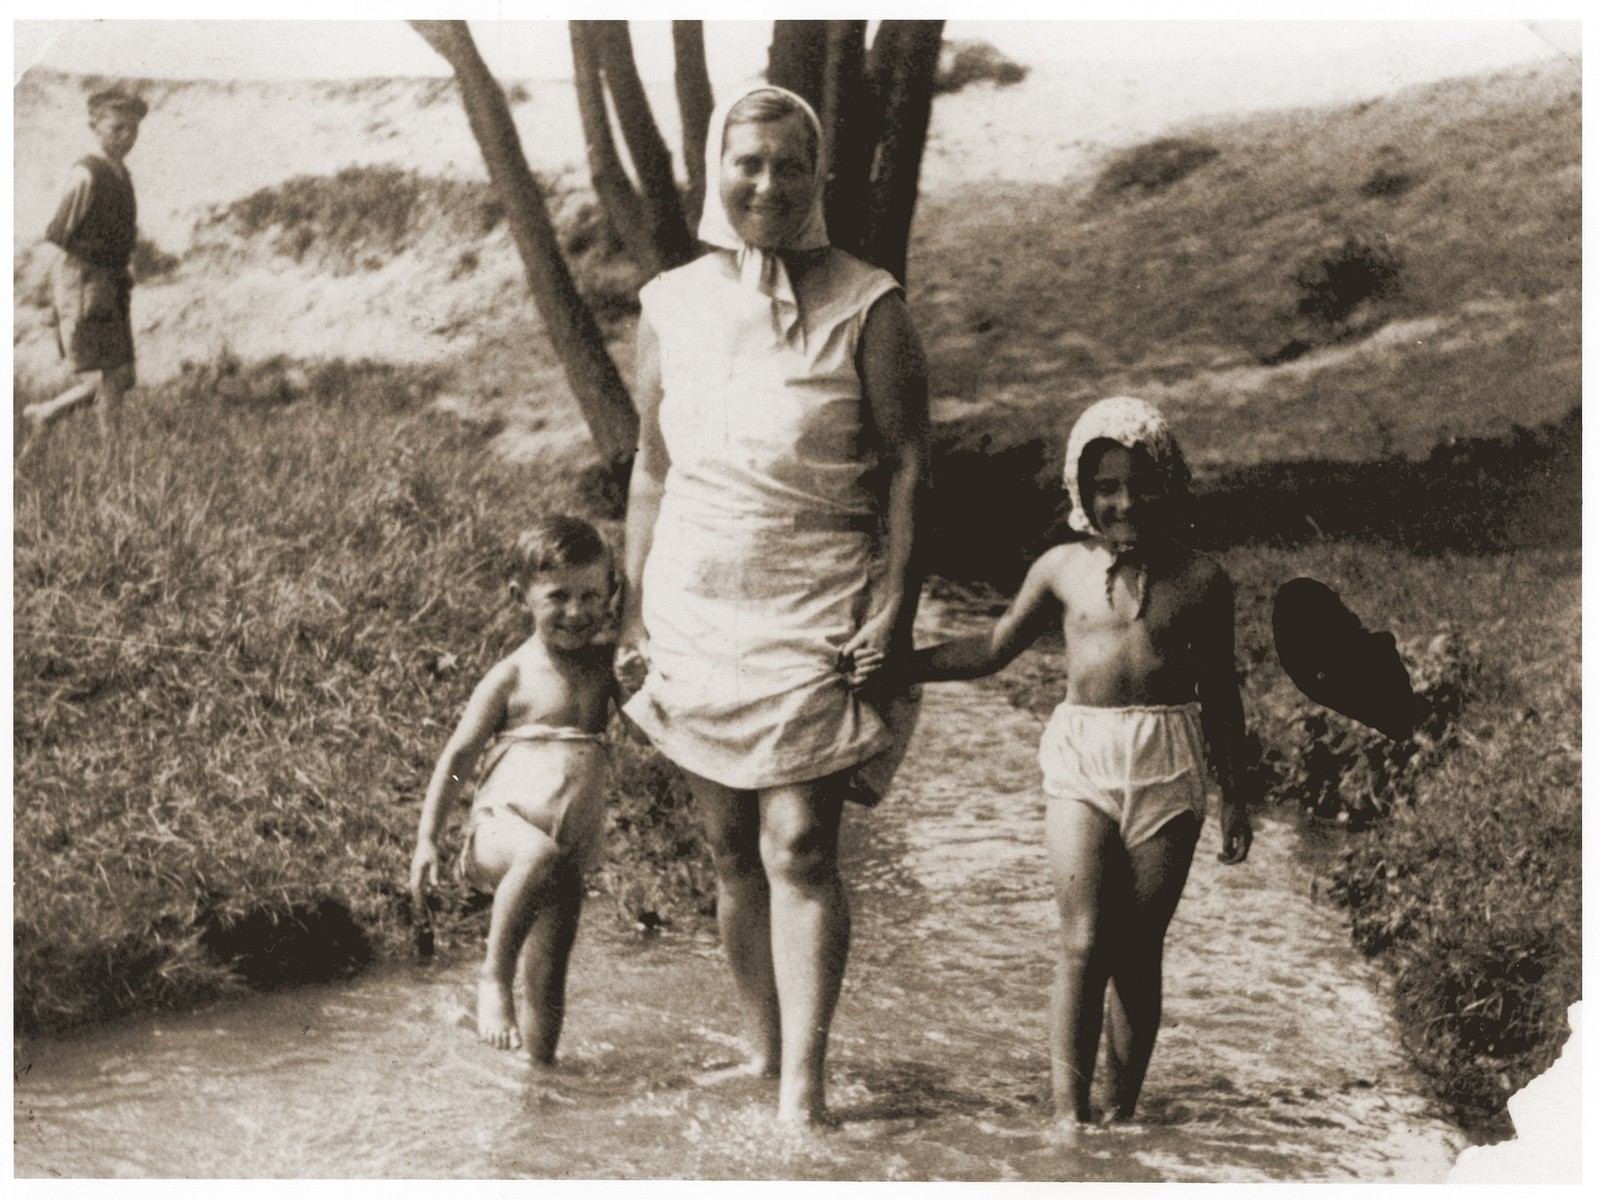 A Jewish mother wades in the water with her two young children while vacationing in Zarki.  Pictured are Tola Goldblum with her children Salusia and Wolf.